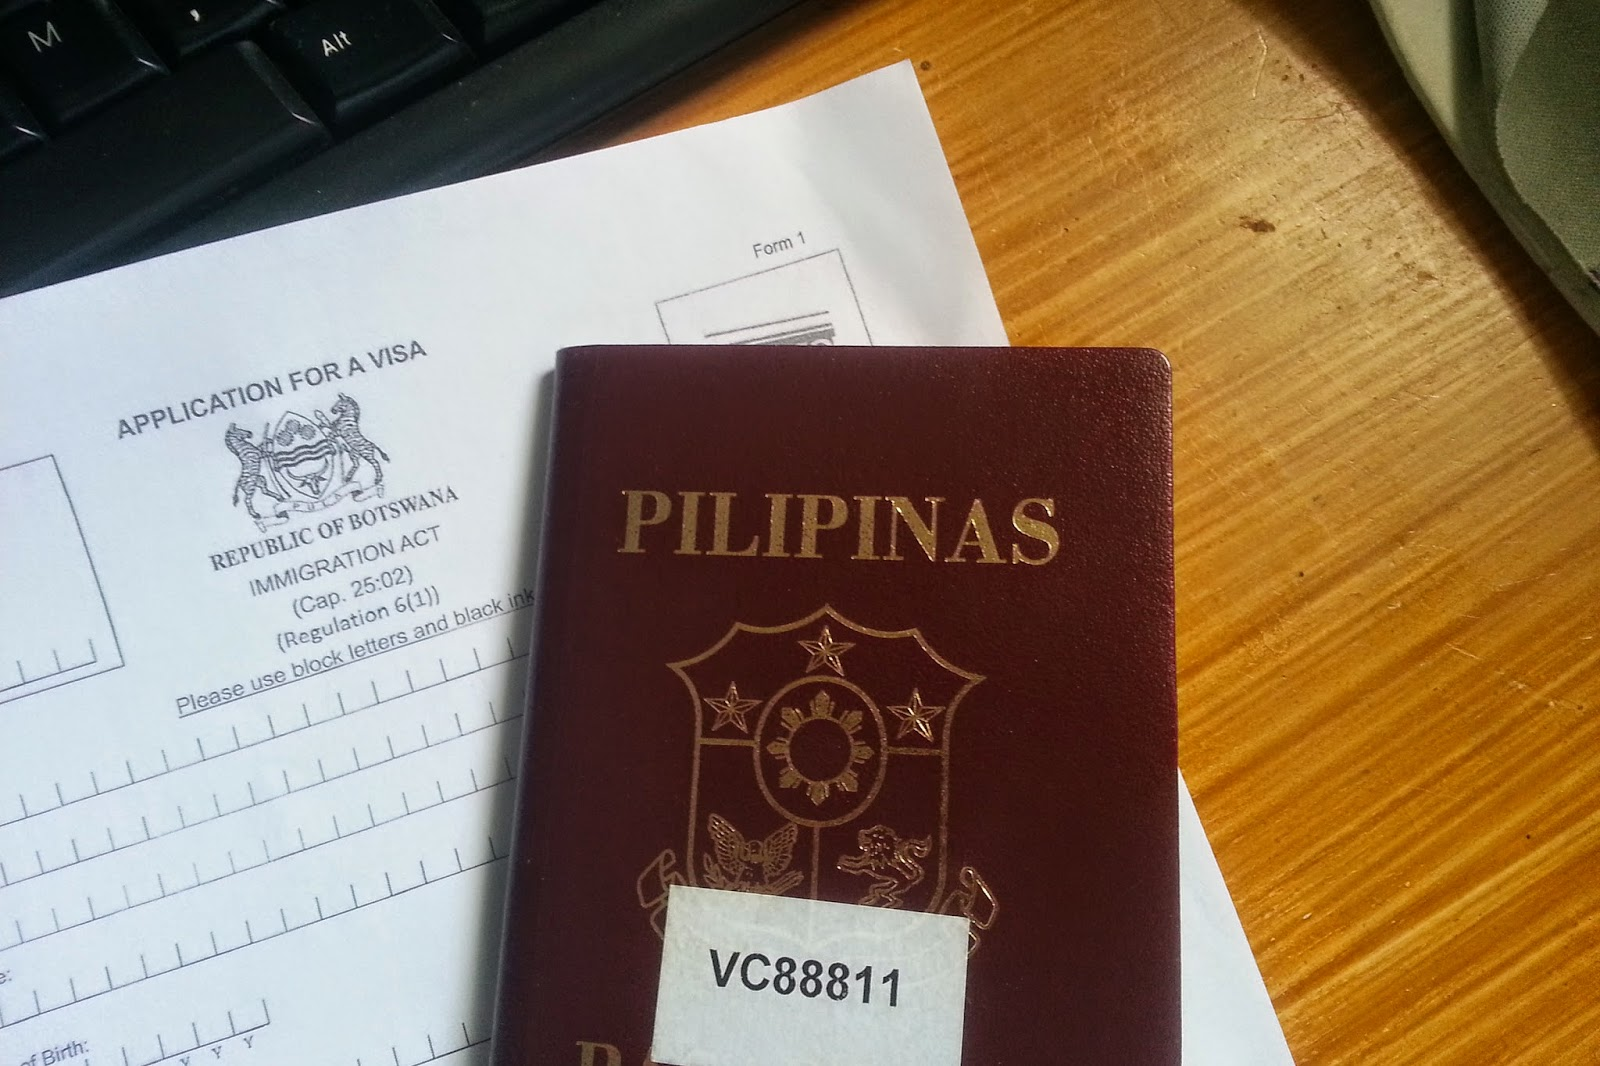 A guide to botswana tourist visa application for philippine a guide to botswana tourist visa application for philippine passport holders thecheapjerseys Image collections